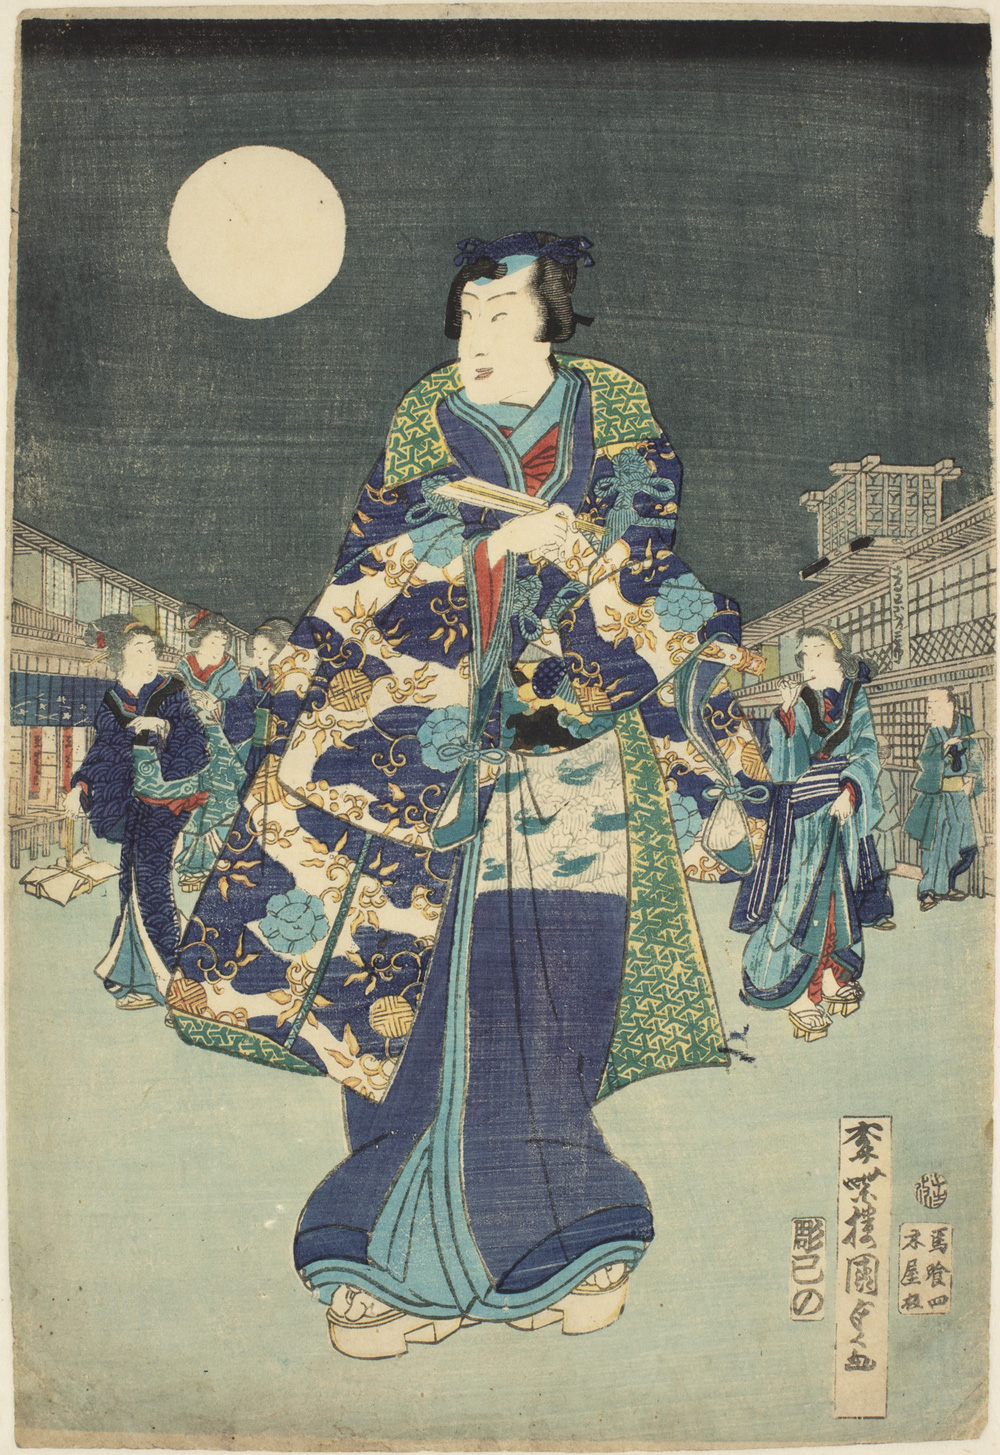 A Japanese print of a street scene at night, a full moon is in the sky. In the foreground there is a man dressed in colourful traditional clothes, other figures in similar clothes walk behind him, the buildings either side of the street recede.